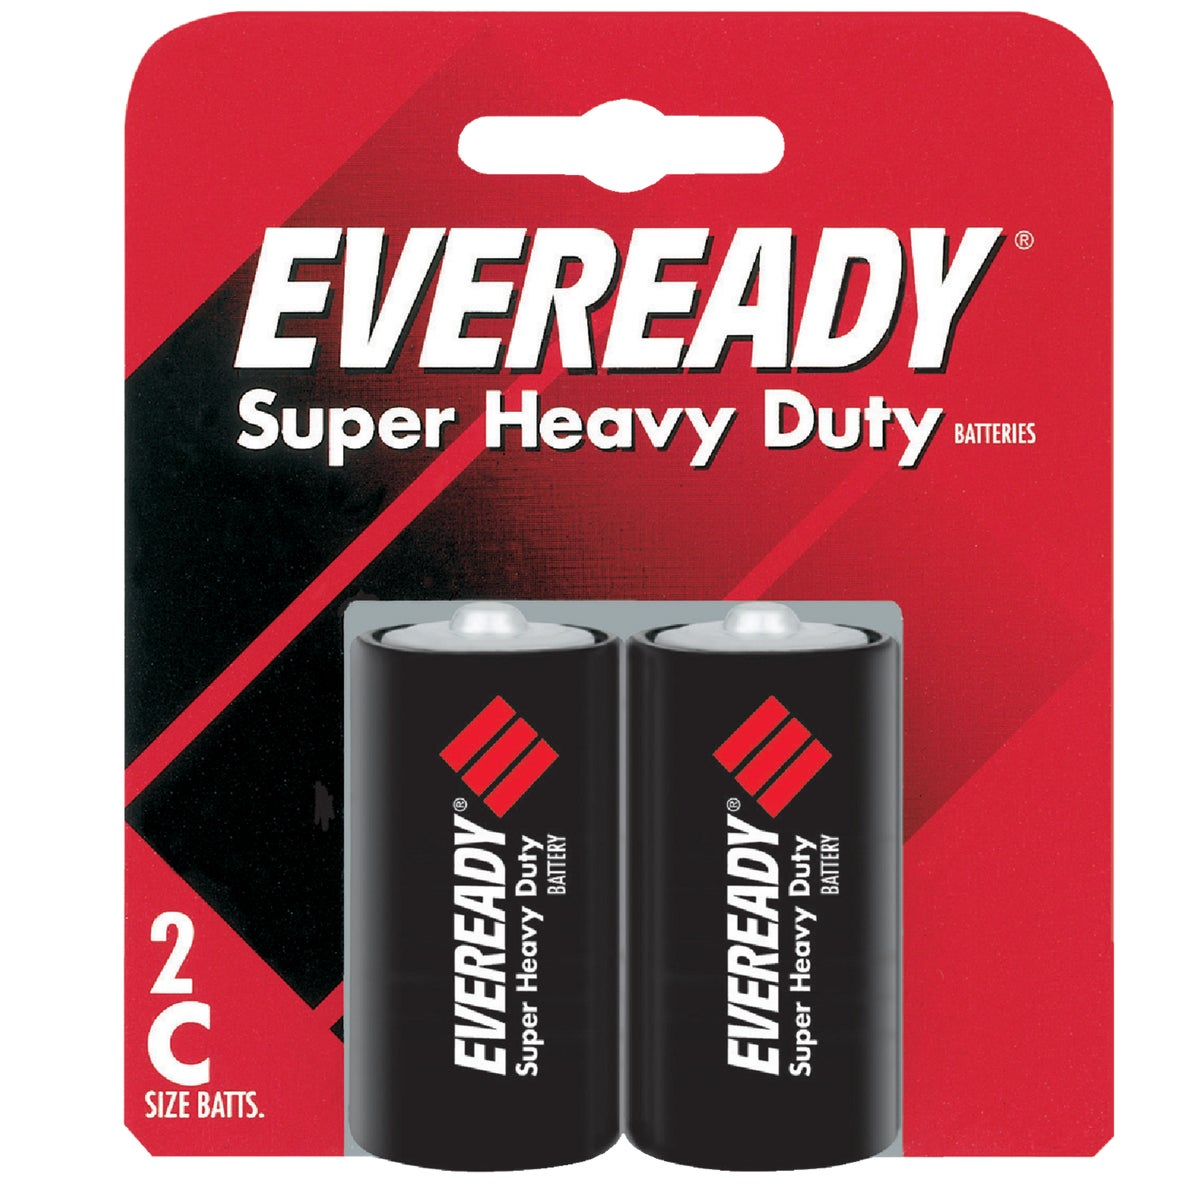 2CD C H/DUTY BATTERY